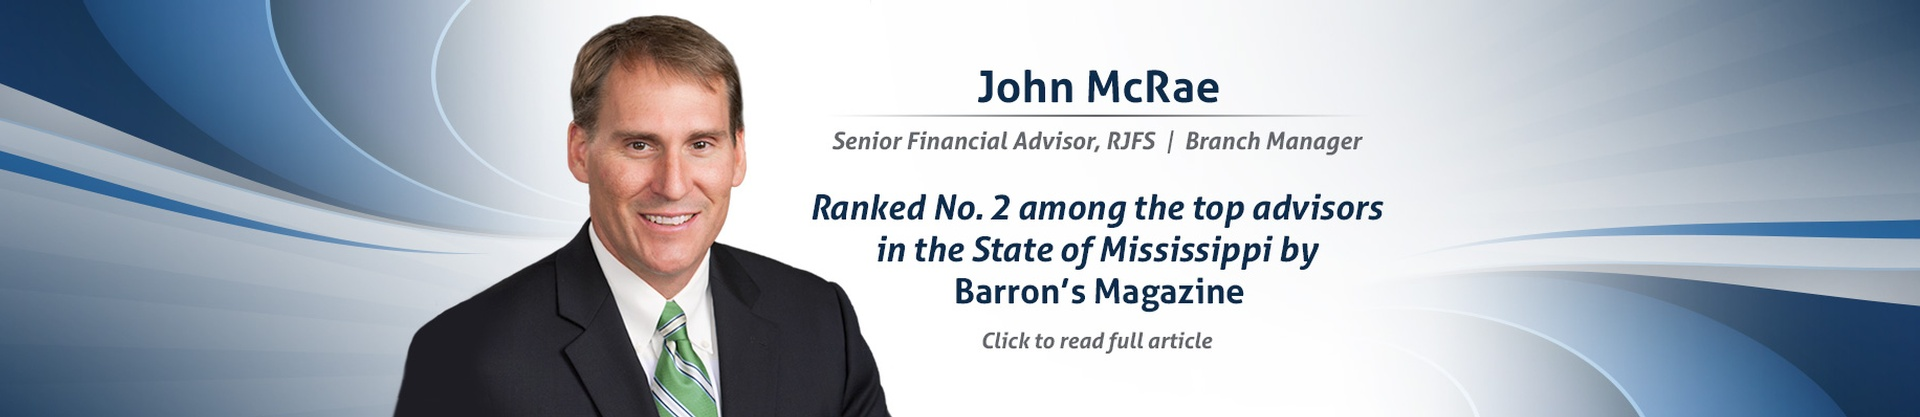 John McRae. Senior Financial Advisor, RJFS/Branch Manager. Ranked Number 2 among the top advisors in the State of Mississippi by Barron's Magazine. Click to read full article.